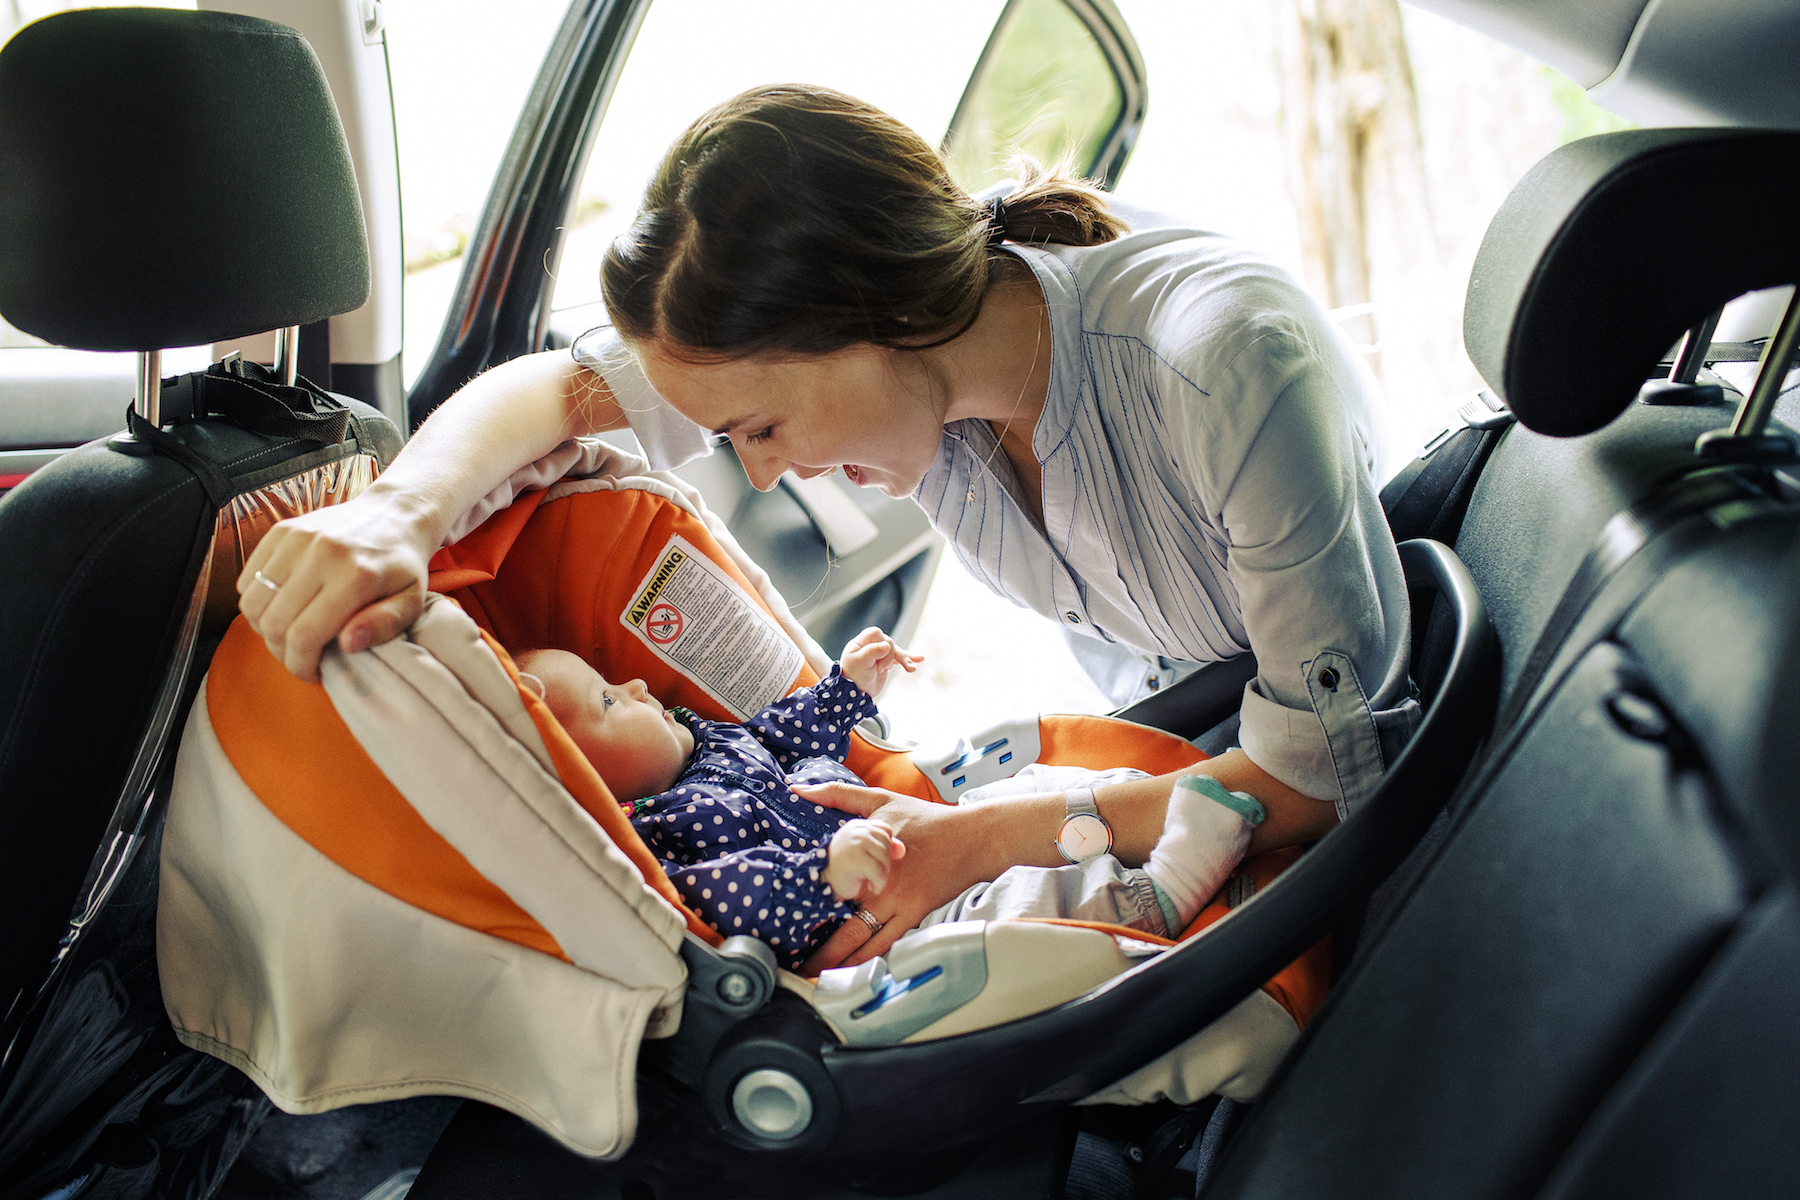 mother in a car adjusting a child seat with a baby in it.